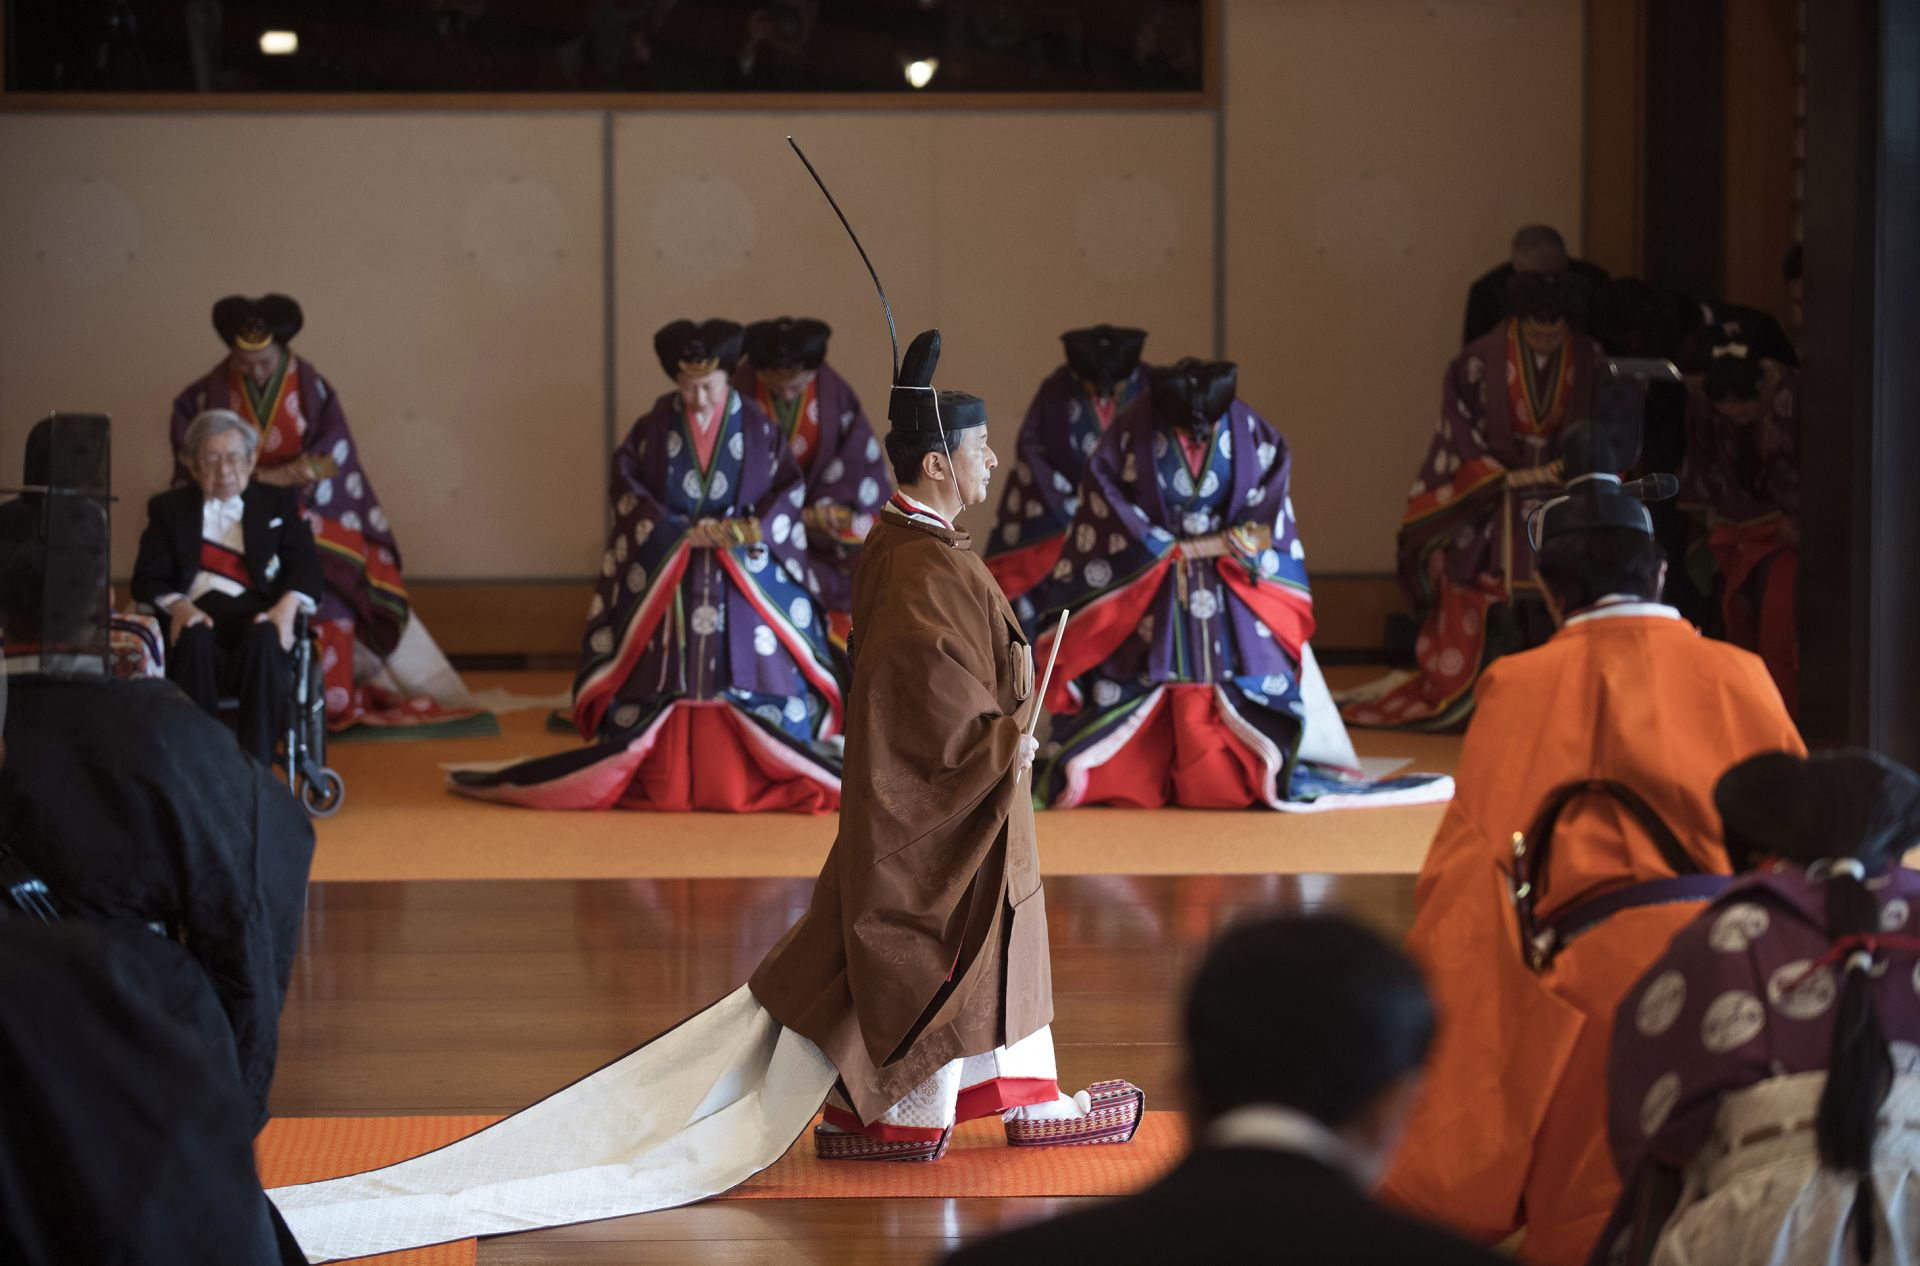 Japan's Emperor Naruhito (C) leaves at the end of the enthronement ceremony where he officially proclaimed his ascension to the Chrysanthemum Throne at the Imperial Palace in Tokyo on October 22, 2019. (Photo by Kazuhiro NOGI / POOL / AFP)